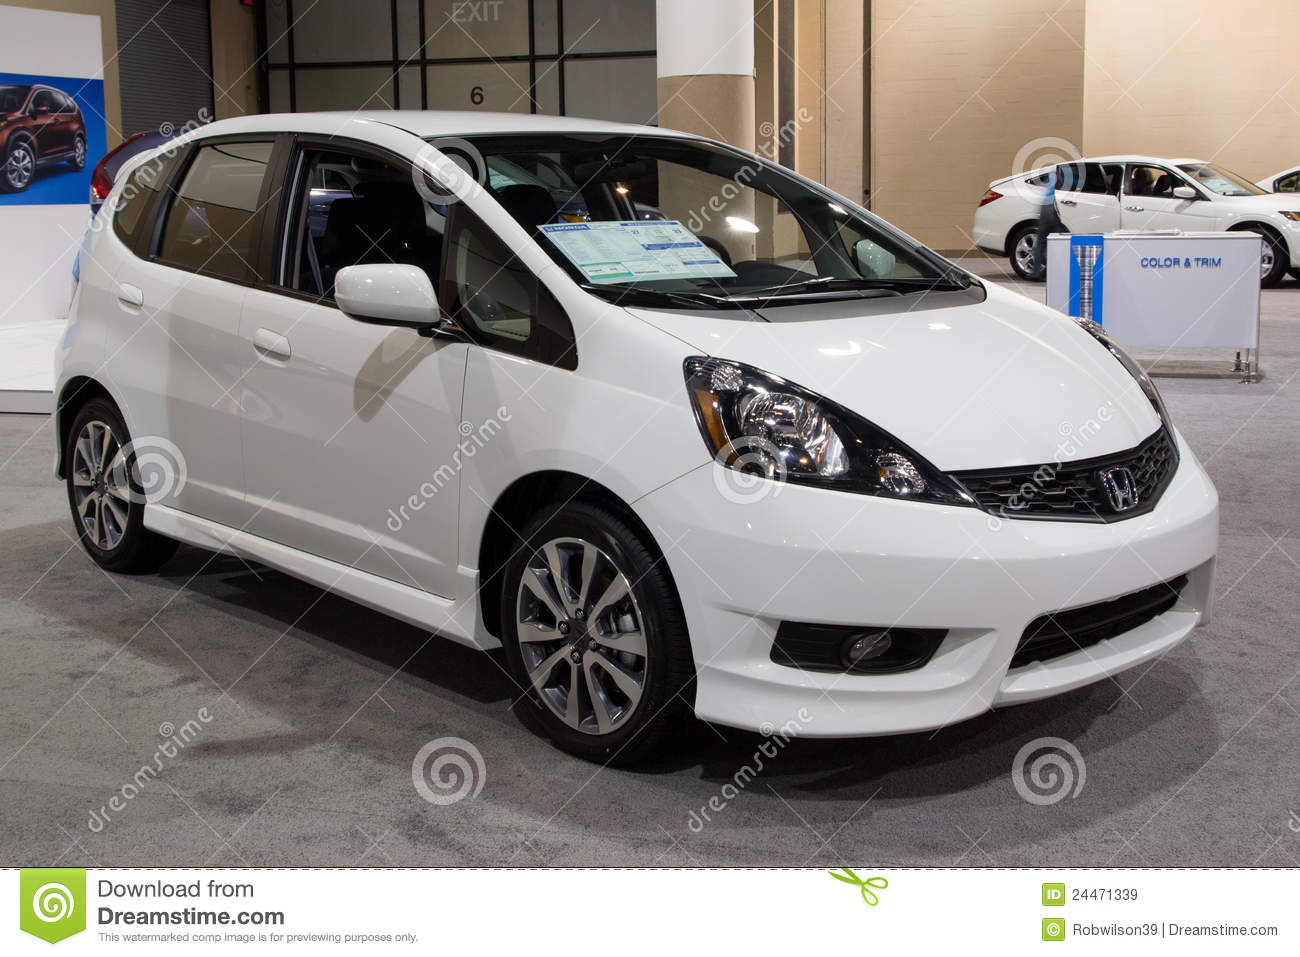 Jacksonville Car Show >> 2012 honda Fit Sport editorial stock image. Image of industry - 24471339